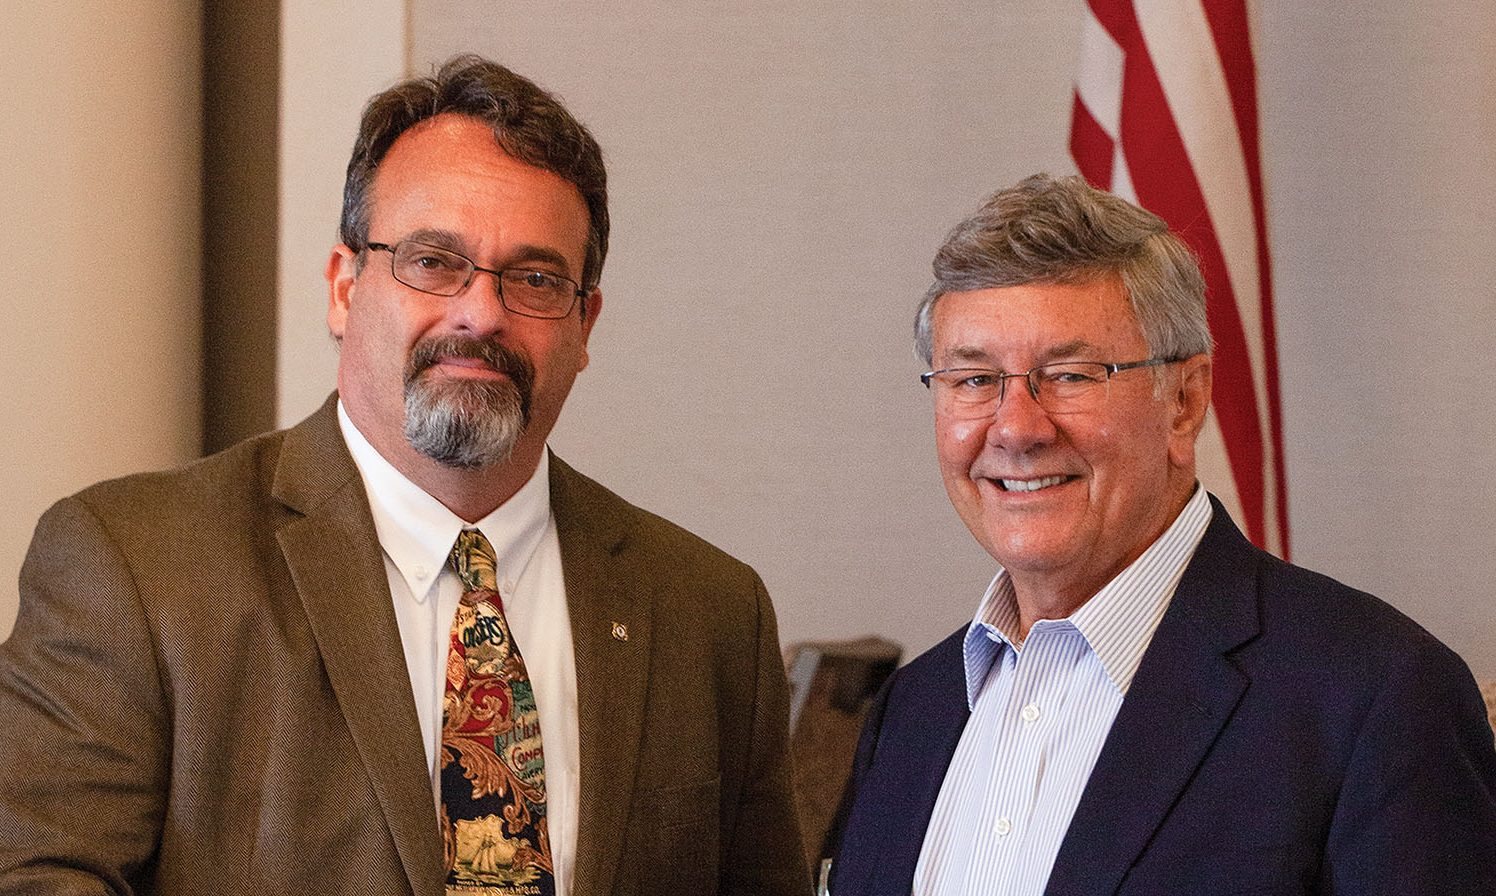 Paul Dittman, left, and Jim Stark, both former Coast Guard captains, are the incoming and outgoing, respectively, presidents of the Gulf Intracoastal Canal Association. (Photo by Frank McCormack)